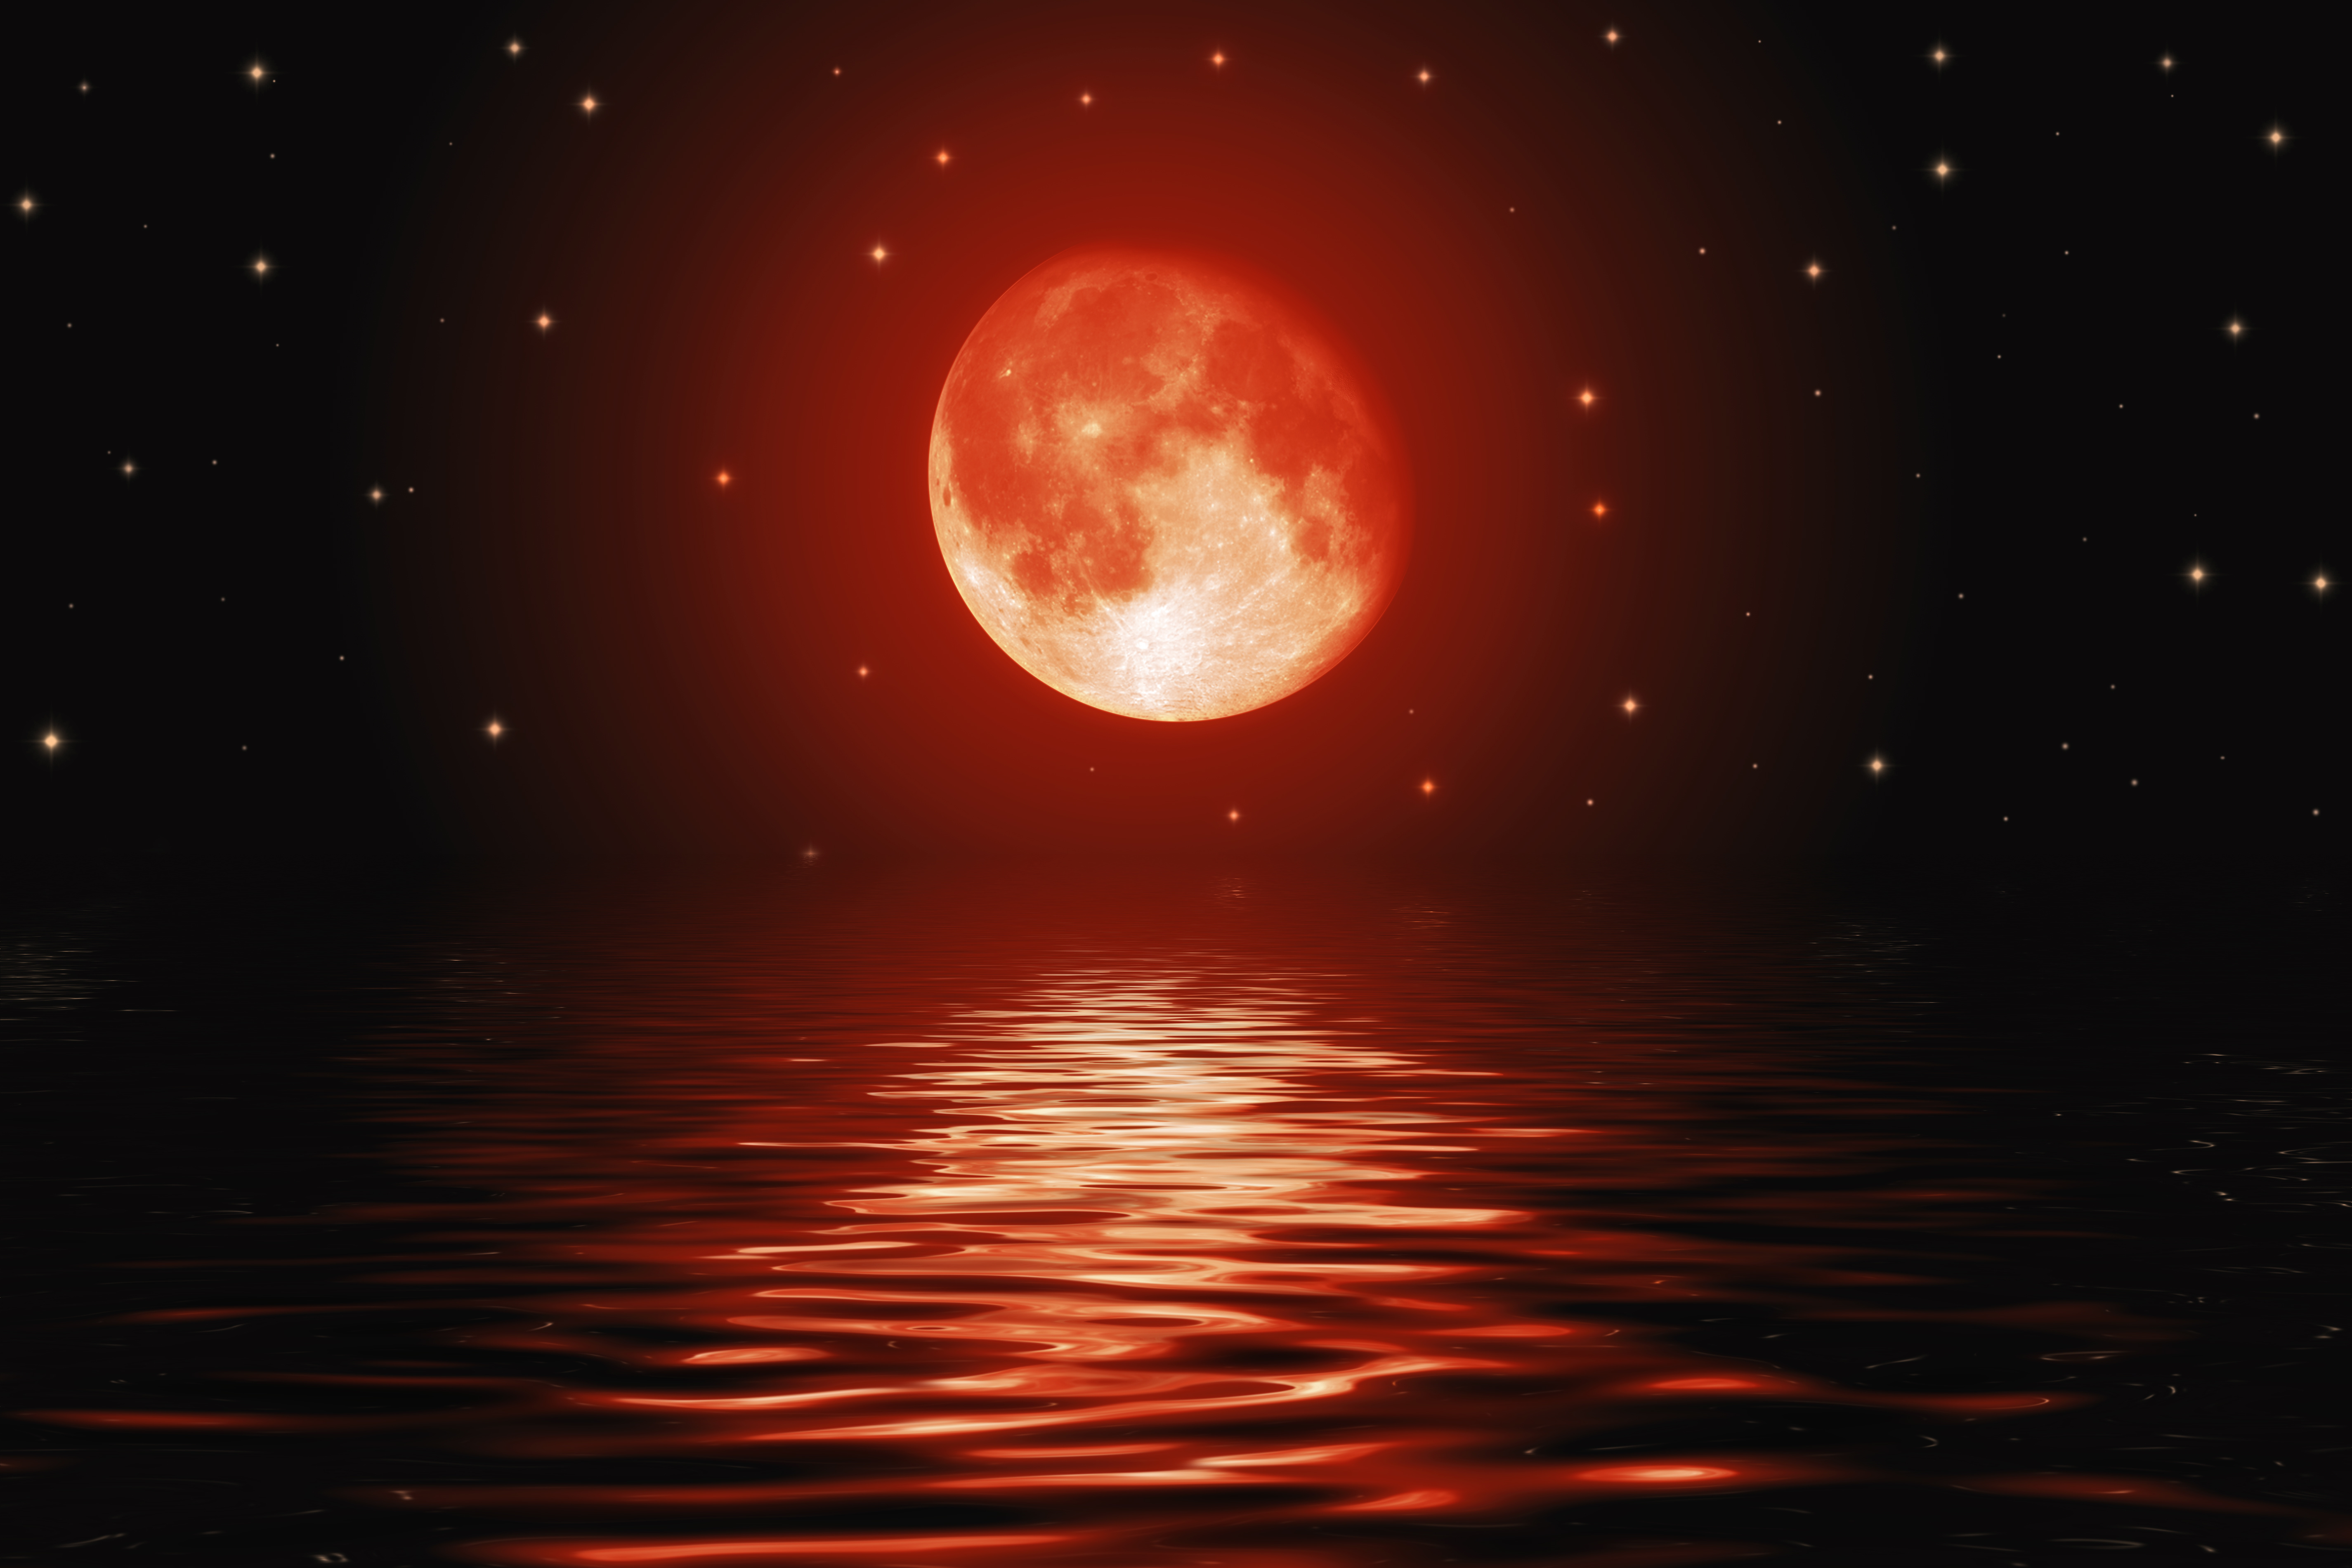 .Moon reflecting off the water with dolphins jumping ...   Full Moon Reflecting Off Water